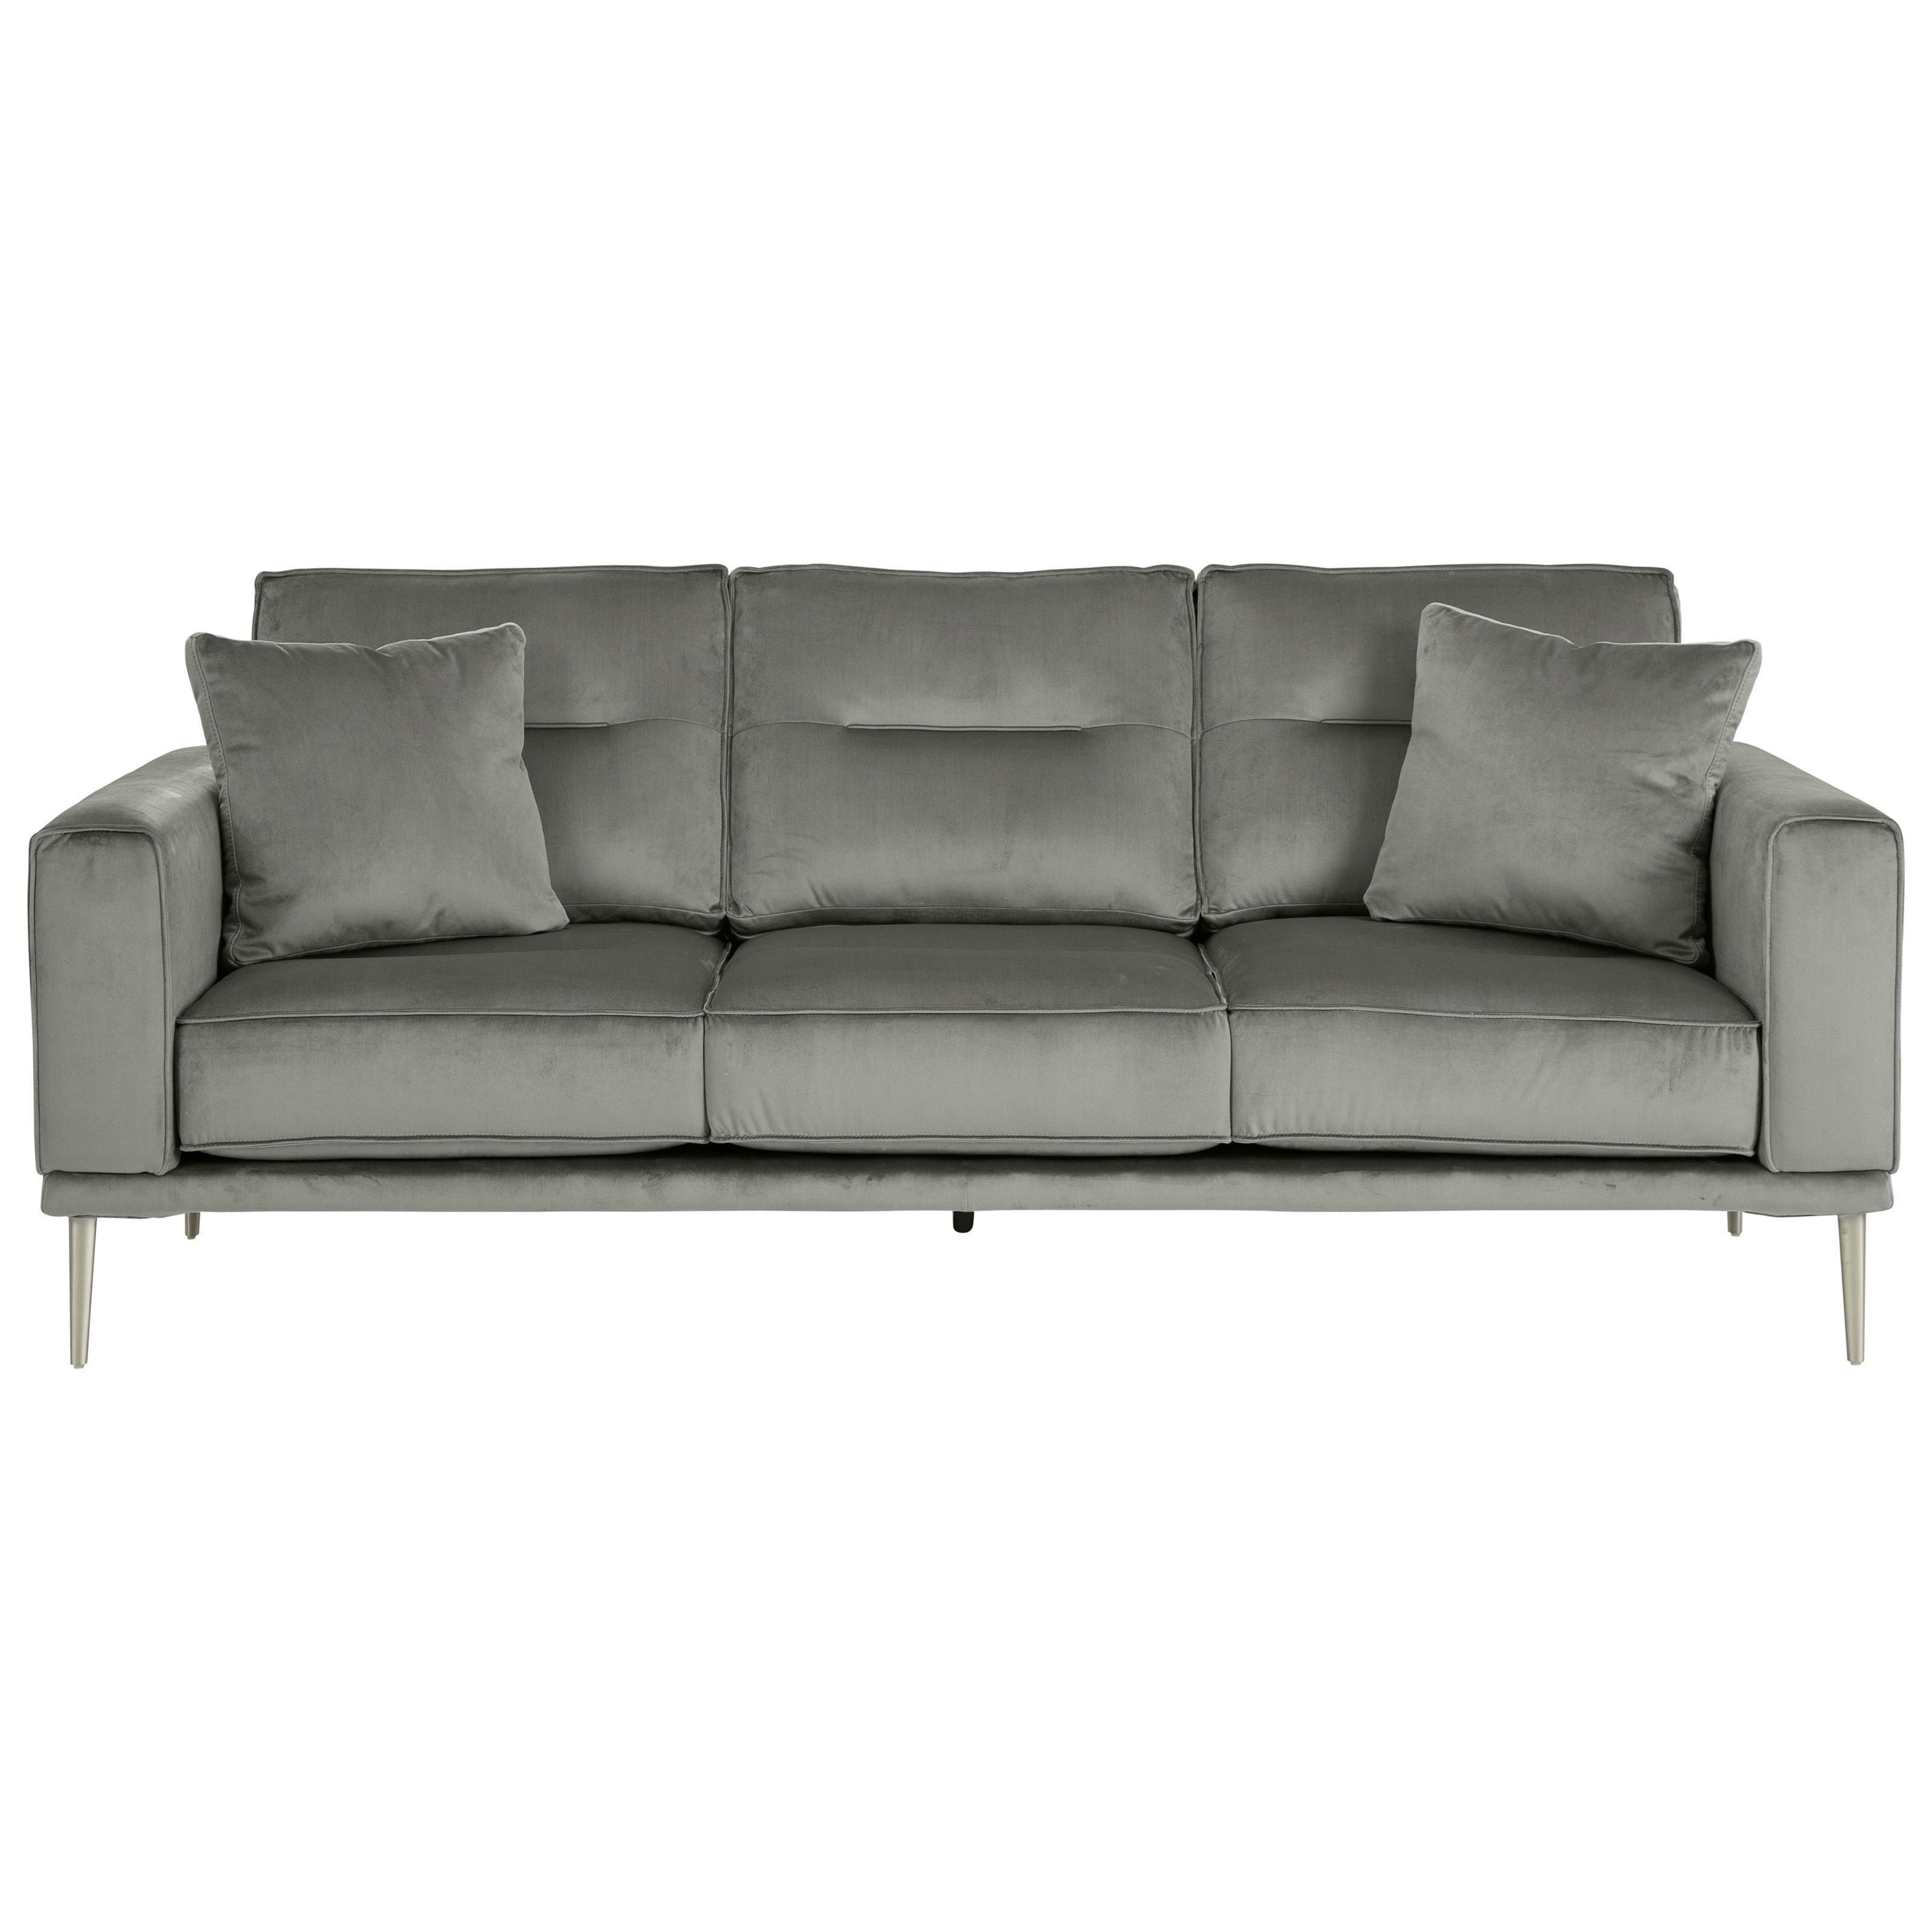 Macleary Sofa by Signature Design by Ashley at A1 Furniture & Mattress